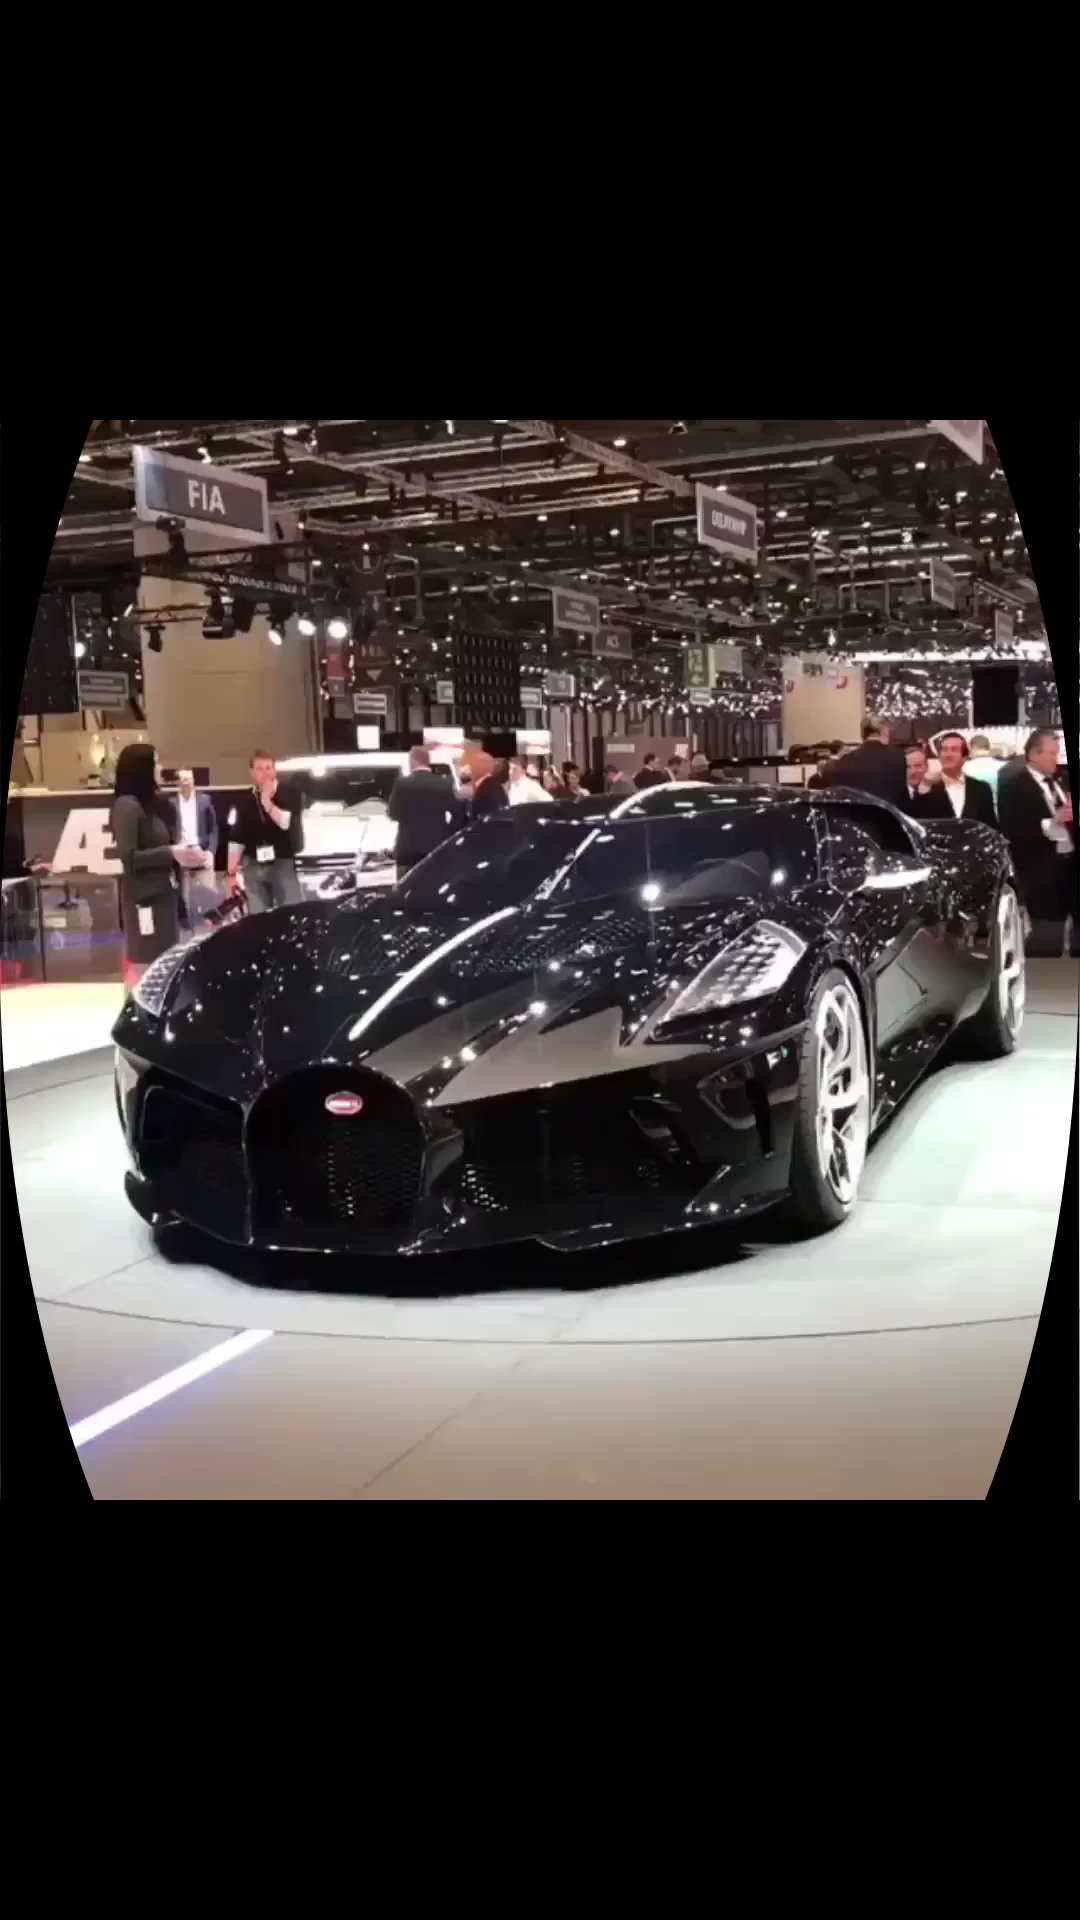 One of the most expensive cars on the market at the auto